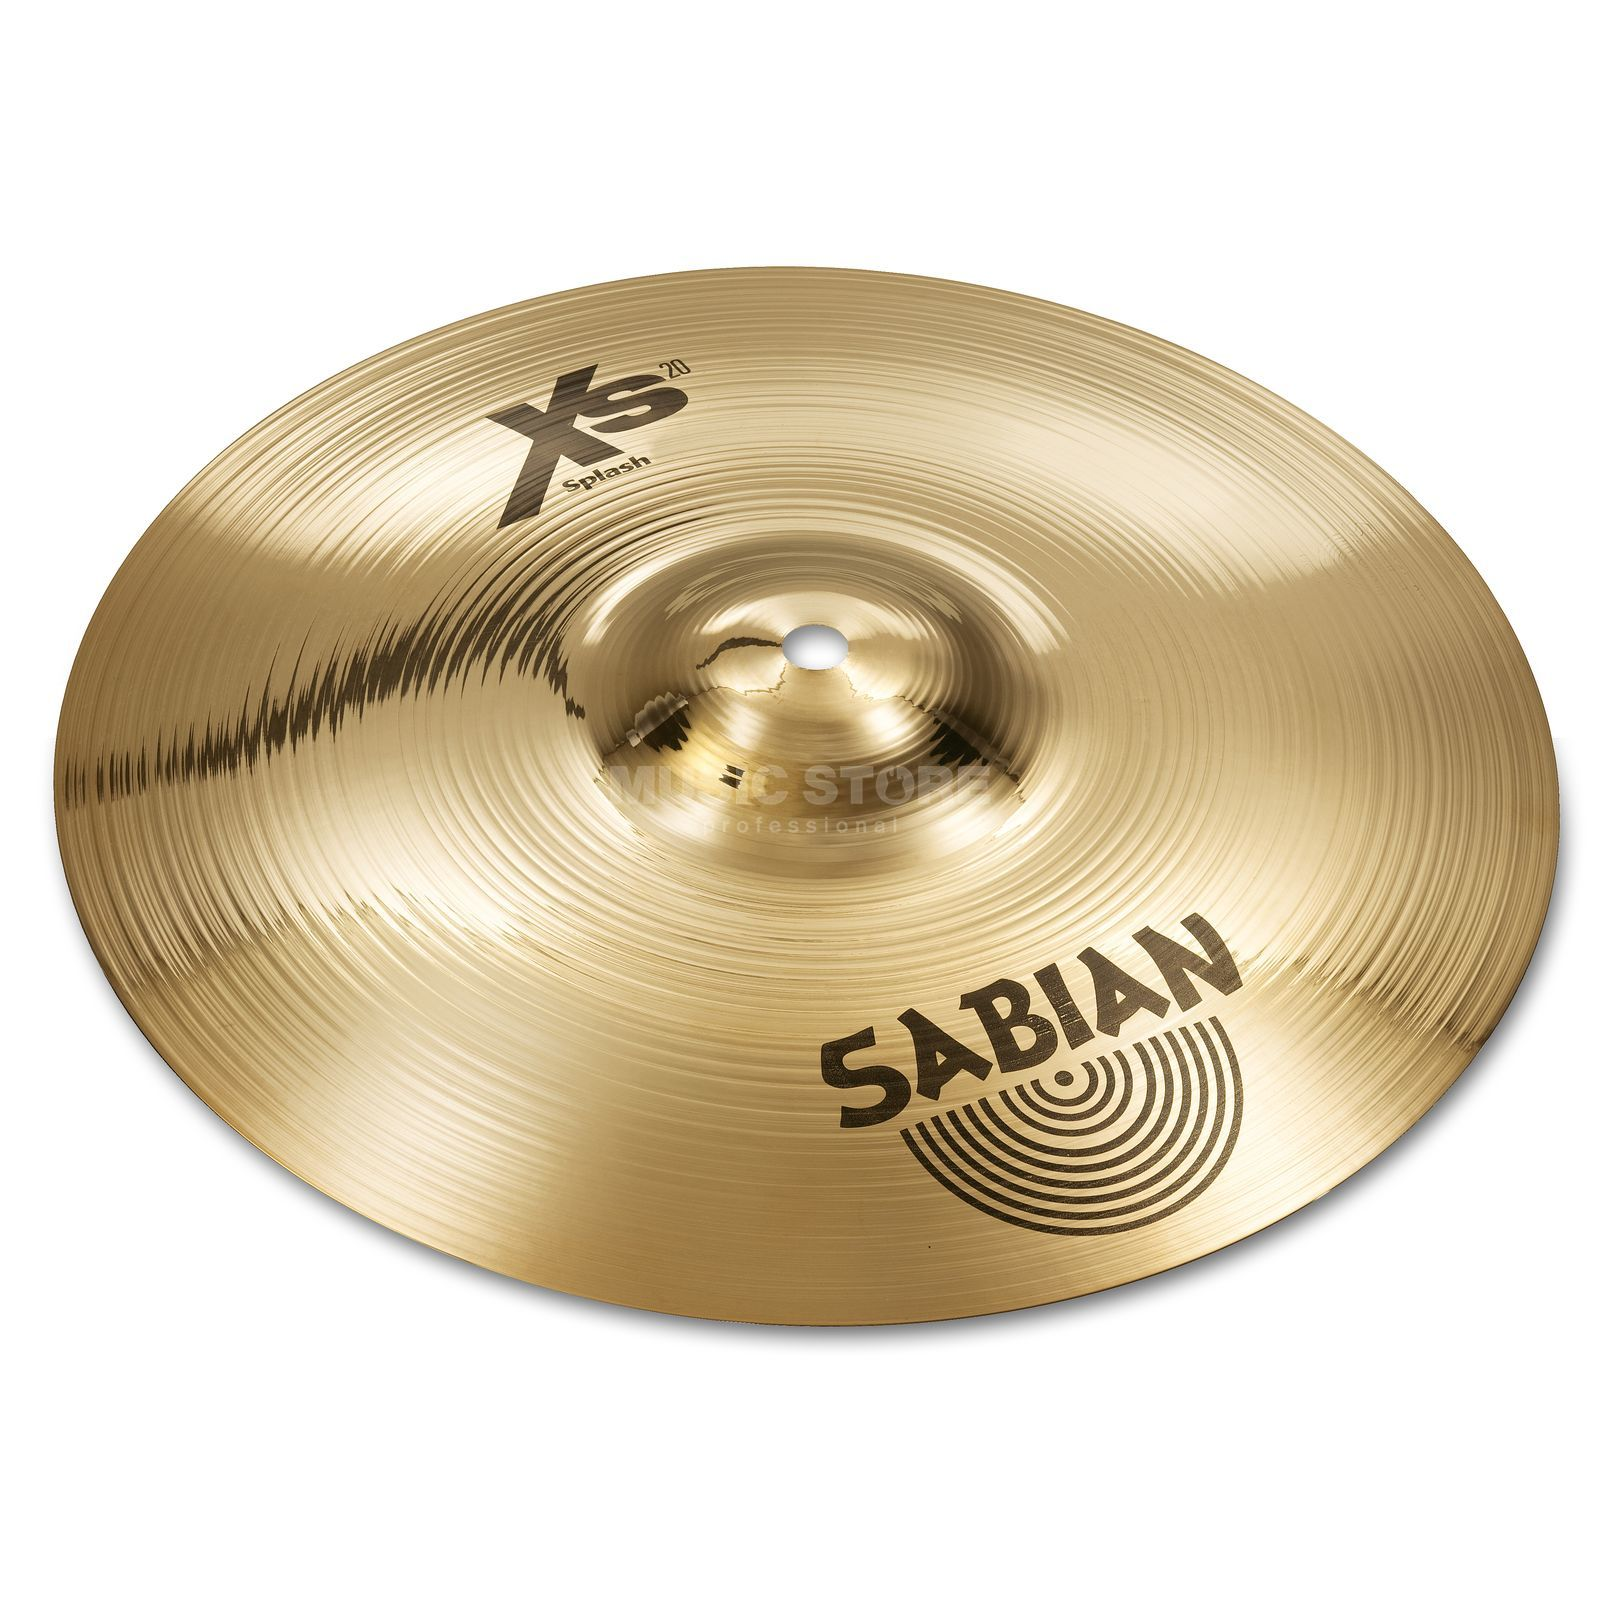 "Sabian XS20 Splash 10"", Brilliant Finish Produktbild"